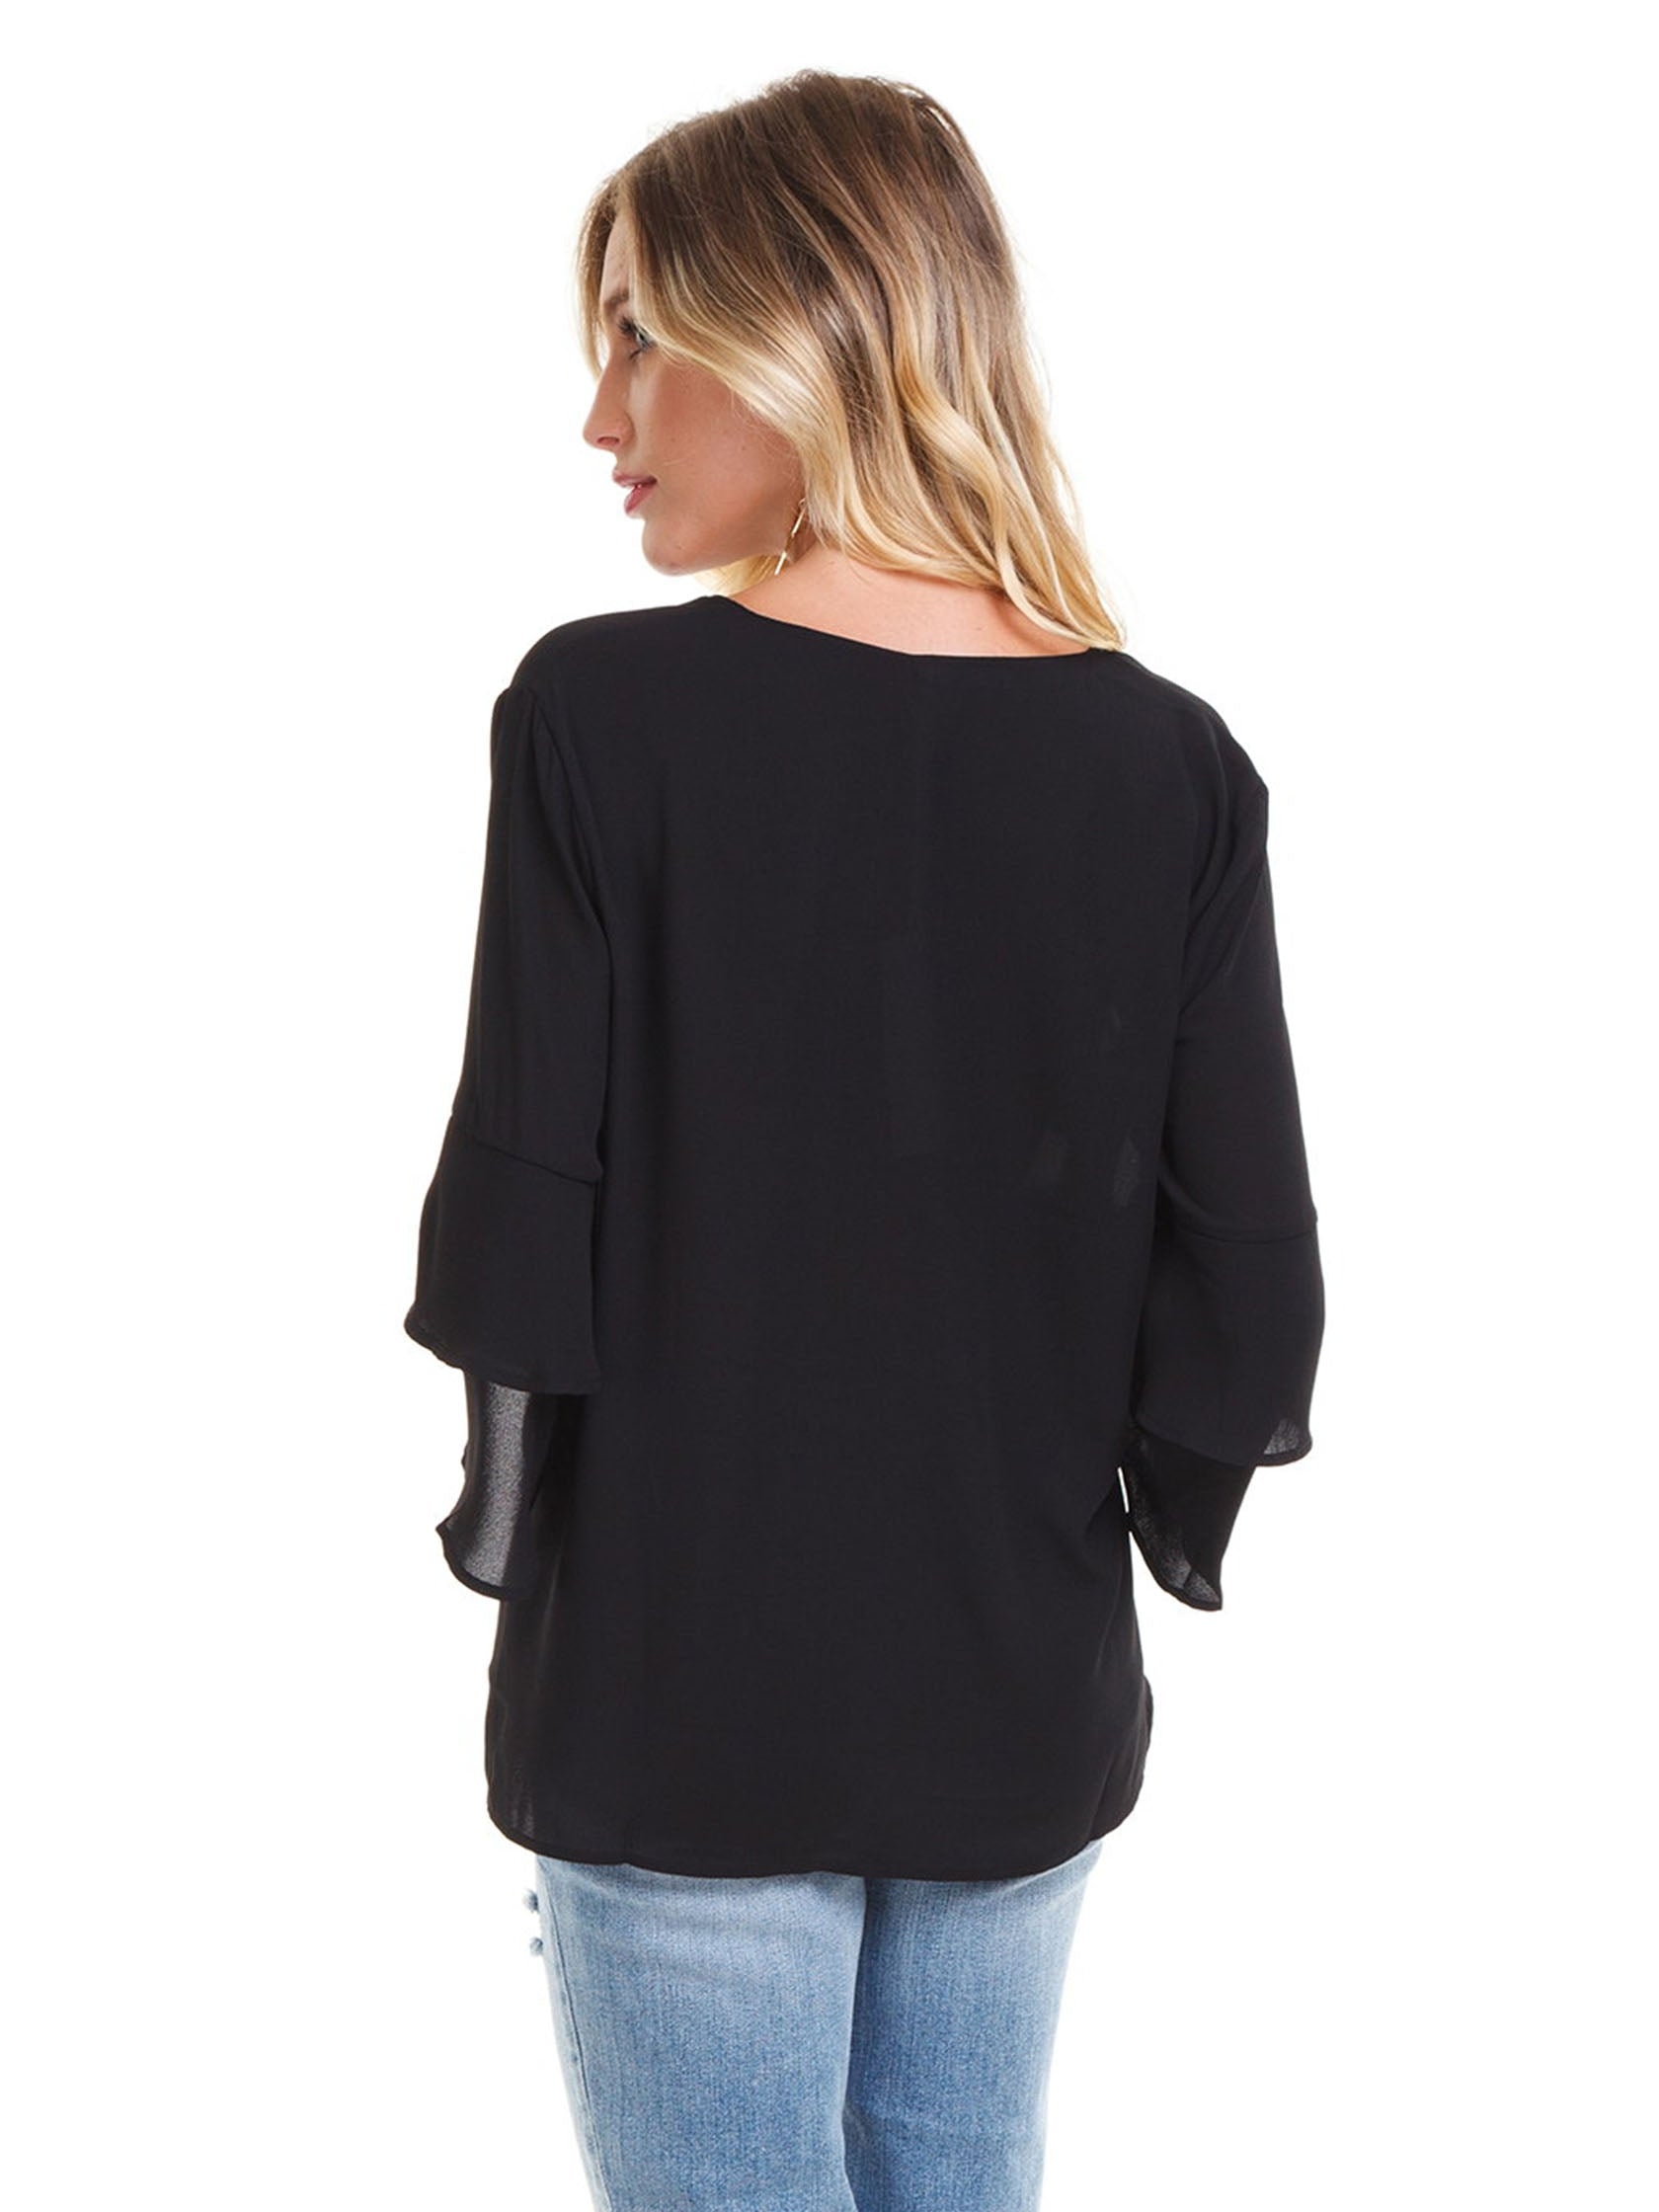 Women outfit in a top rental from Lush called V-neck Ruffle Sleeve Top